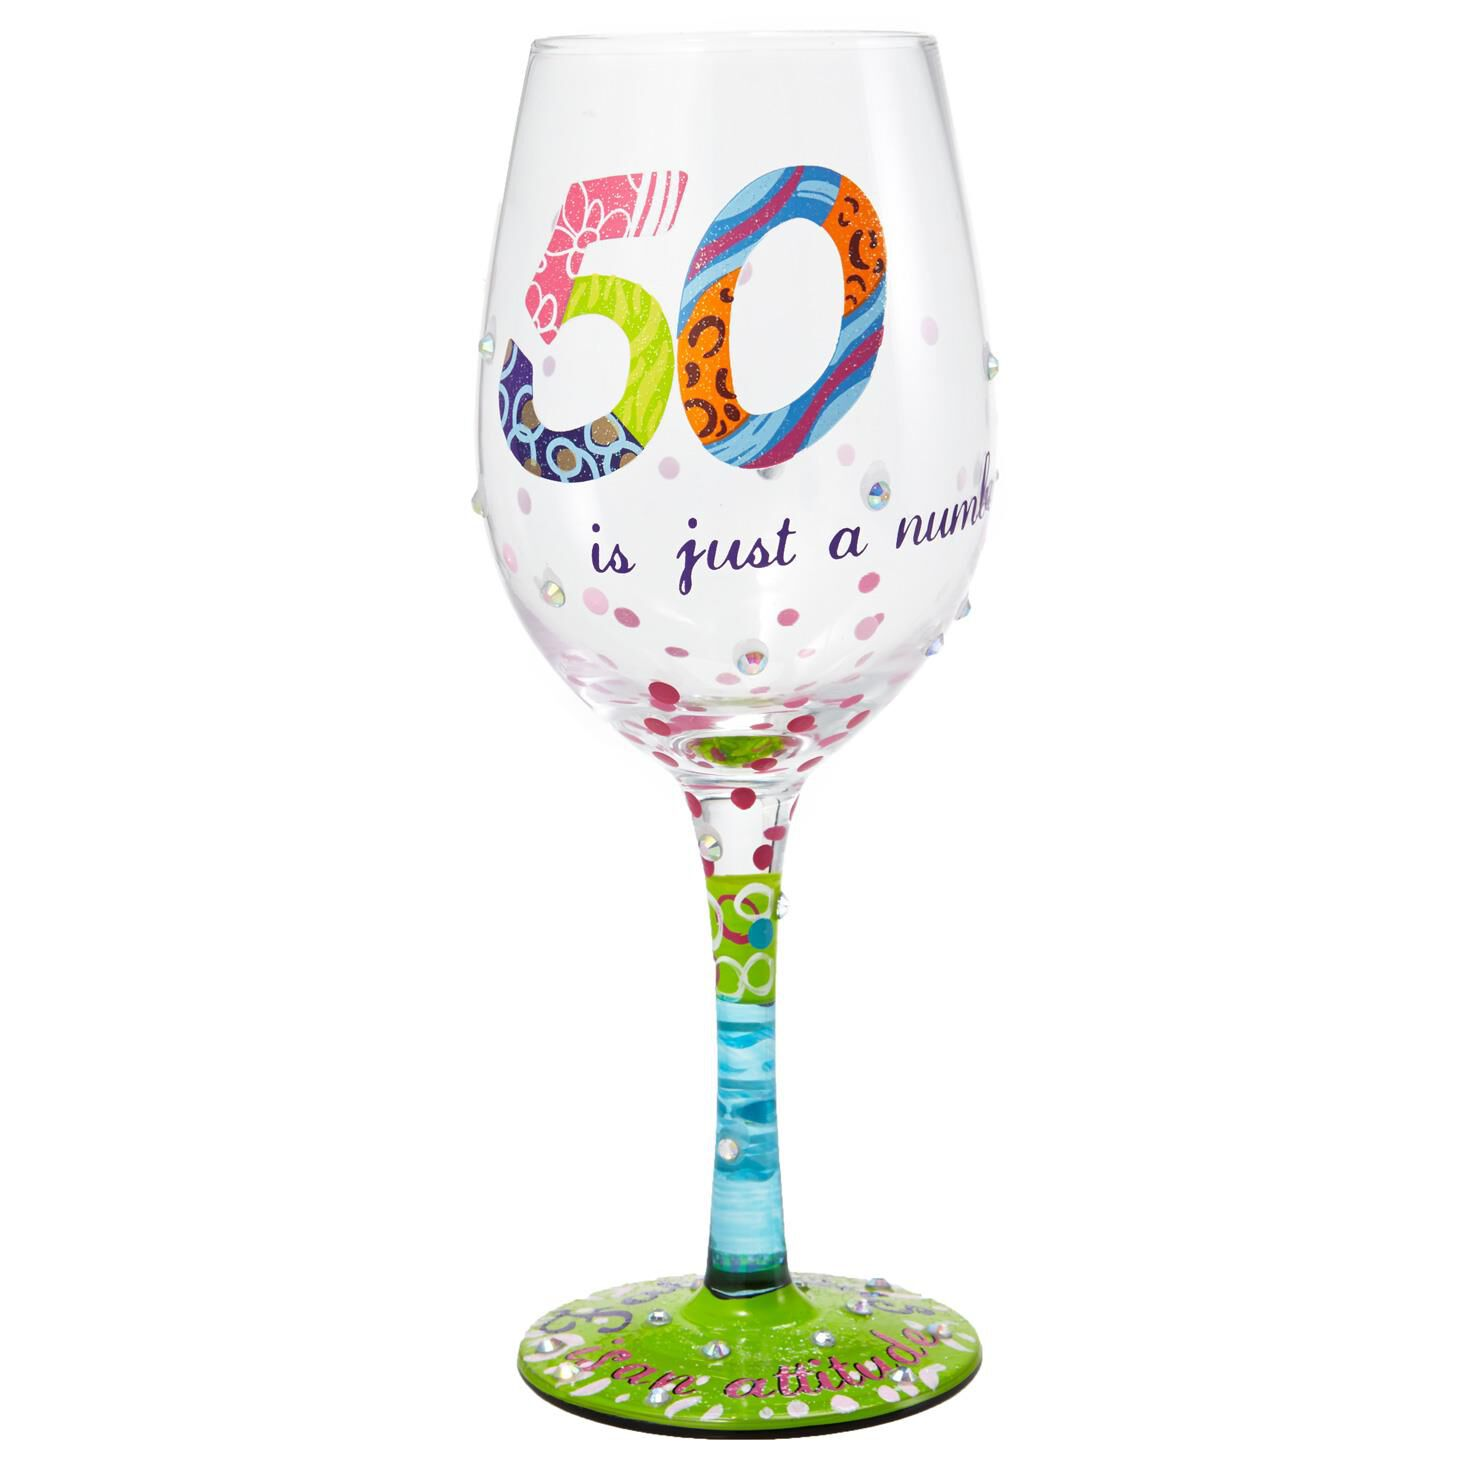 lolita 50 is just a number handpainted wine glass 15 oz